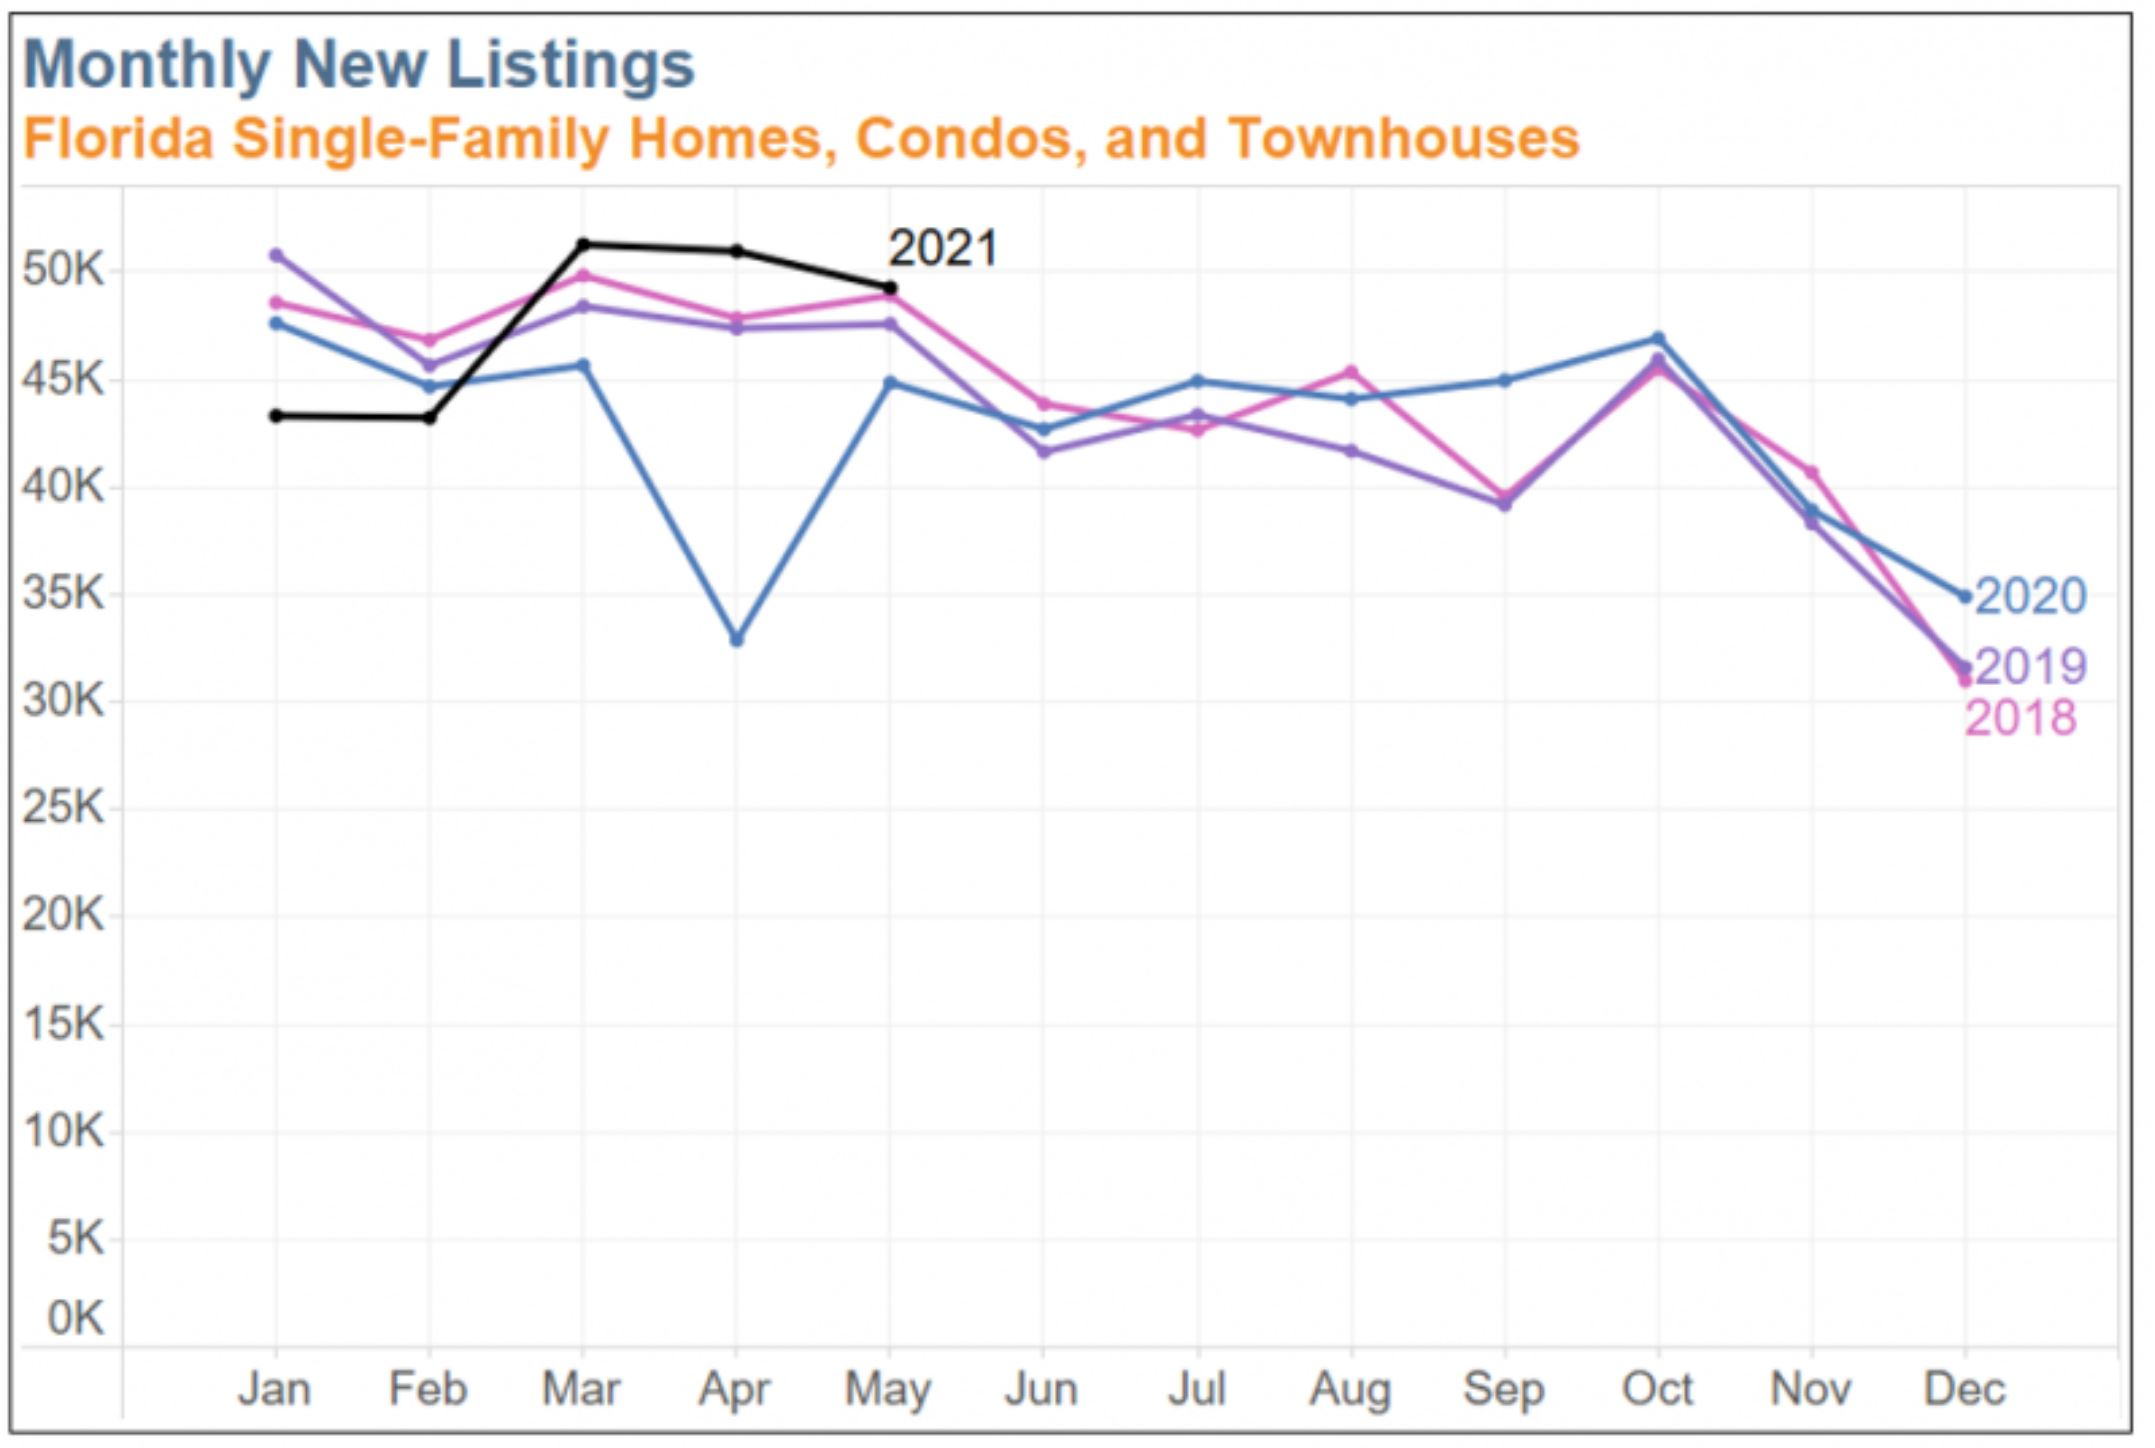 Florida Realtor Magazine 2021 07 16 - Yes Florida Homeowners are listing homes for sale 2 Monthly New Listings after the China COVID-19 coronavirus plandemic Hoey Team 239RealEstateDeals.Com LLC